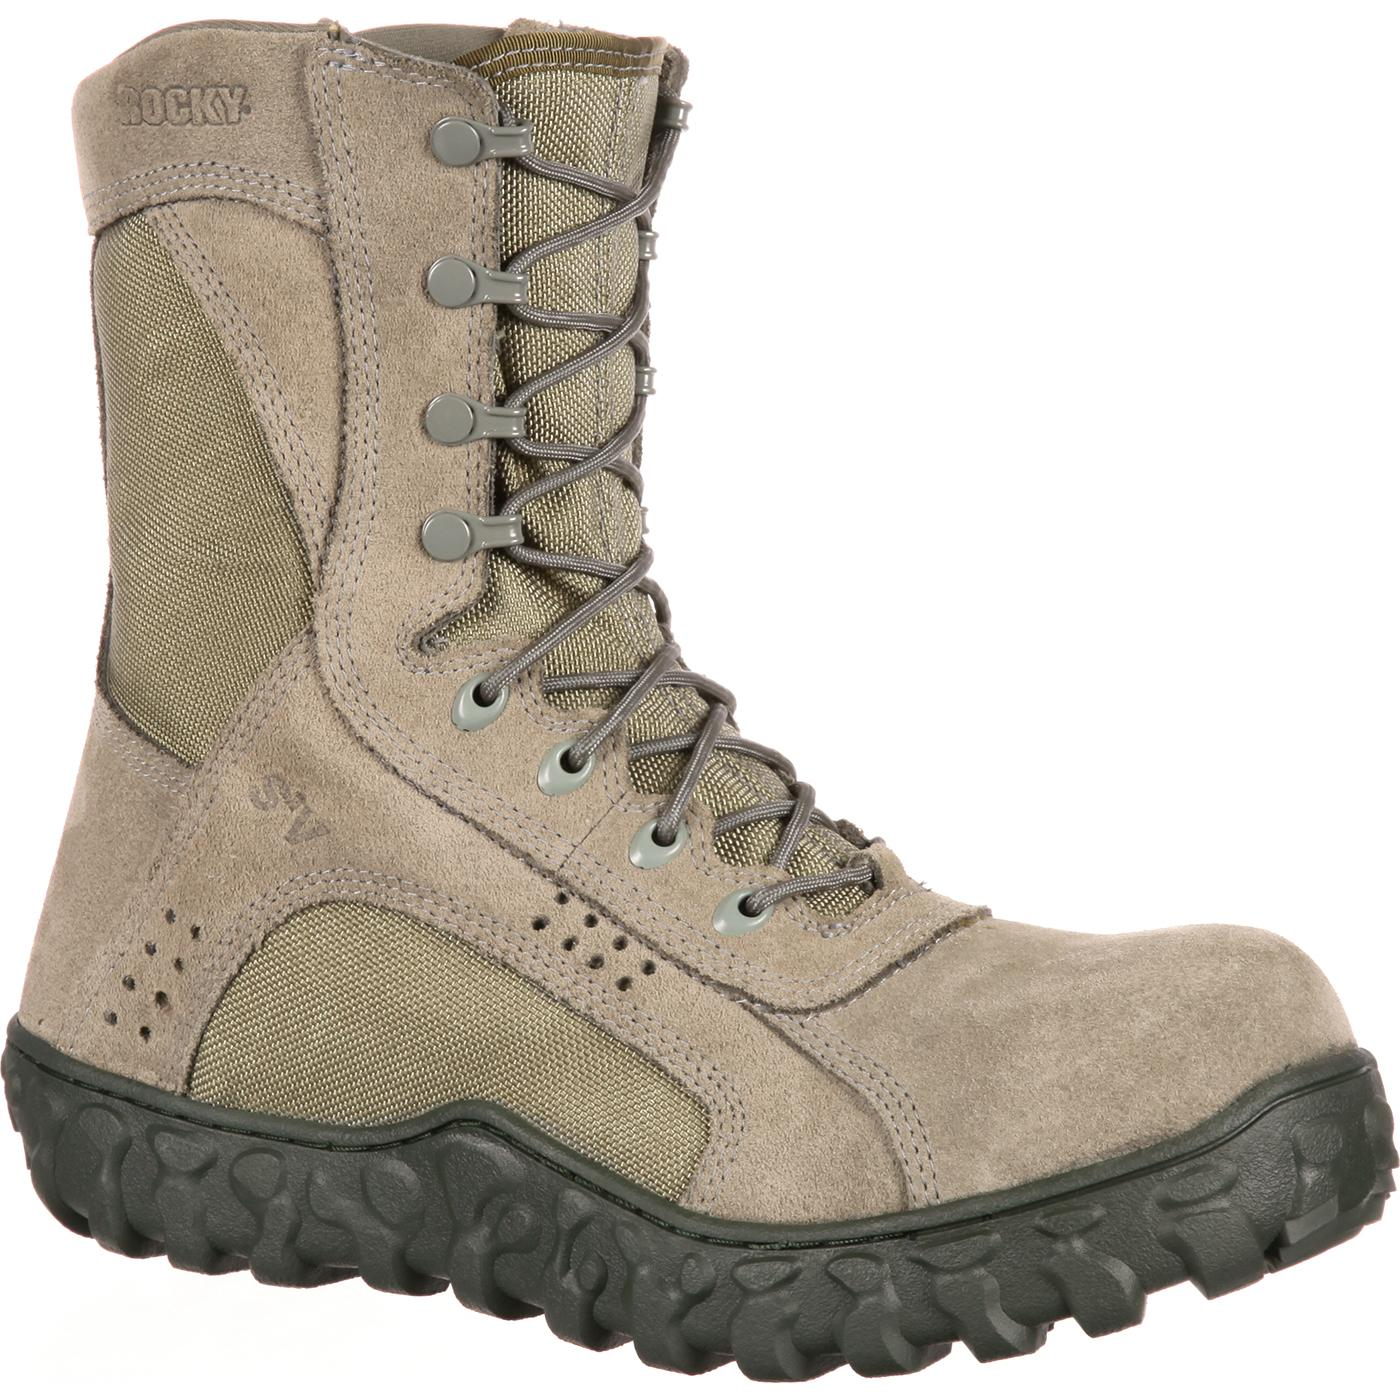 Rocky S2v Composite Toe Tactical Military Boot Rkyc027